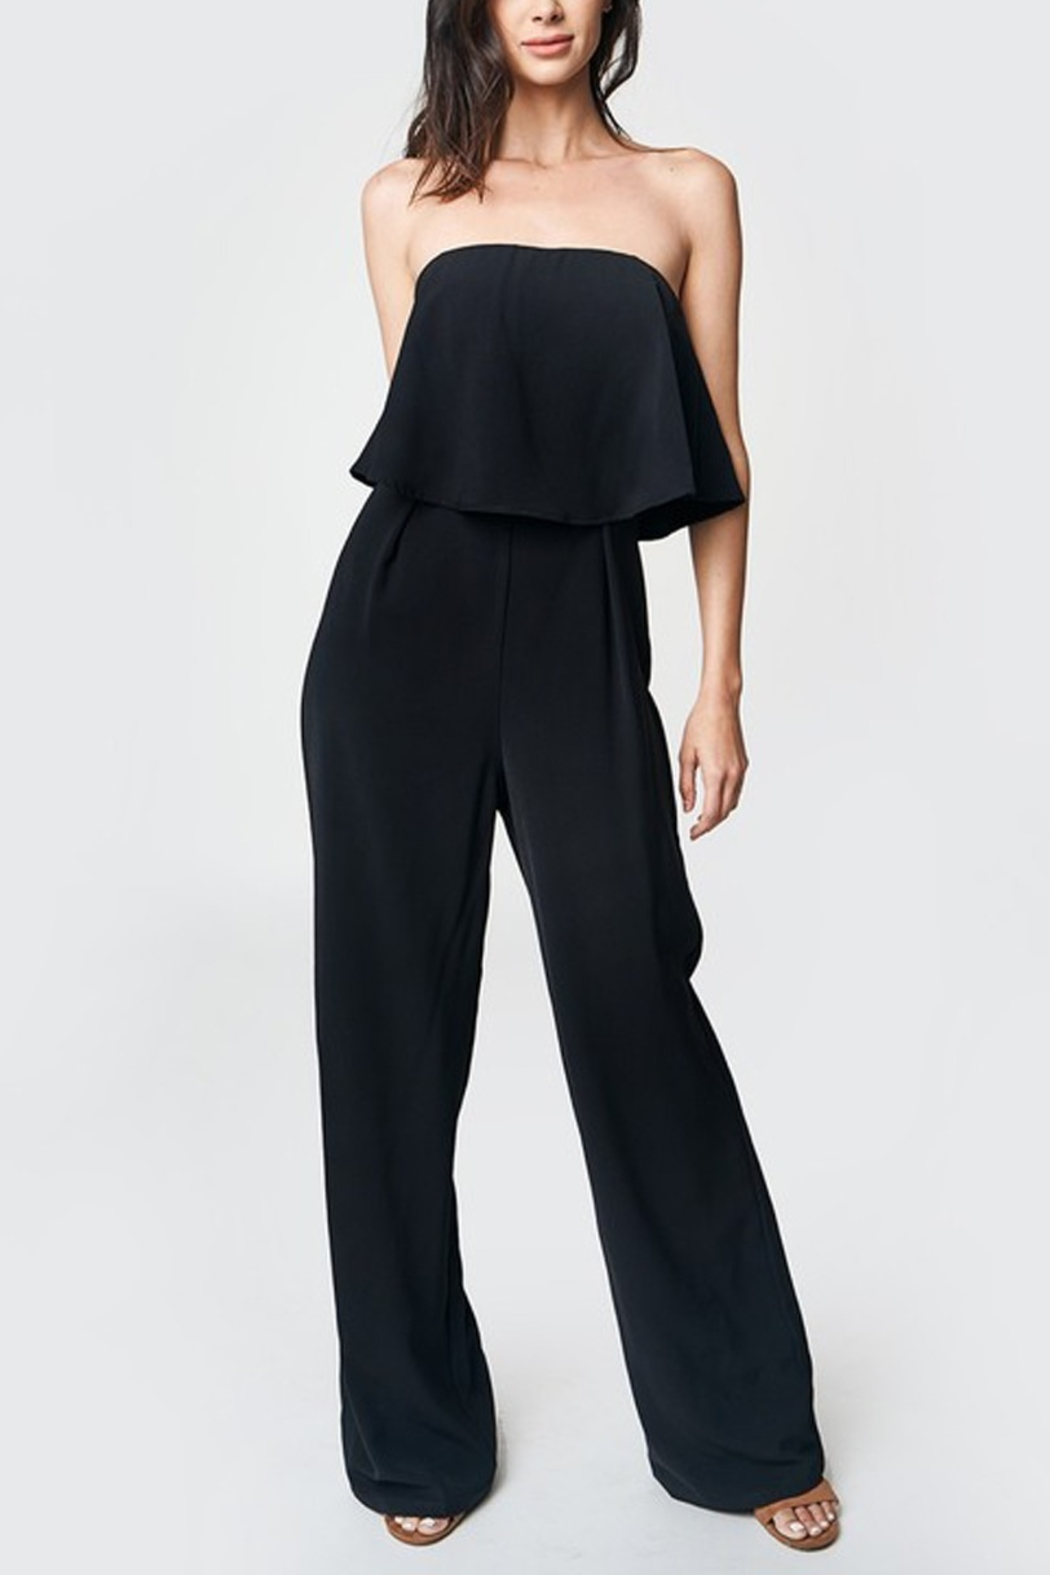 Beauty by BNB Strapless Jumpsuit - Main Image